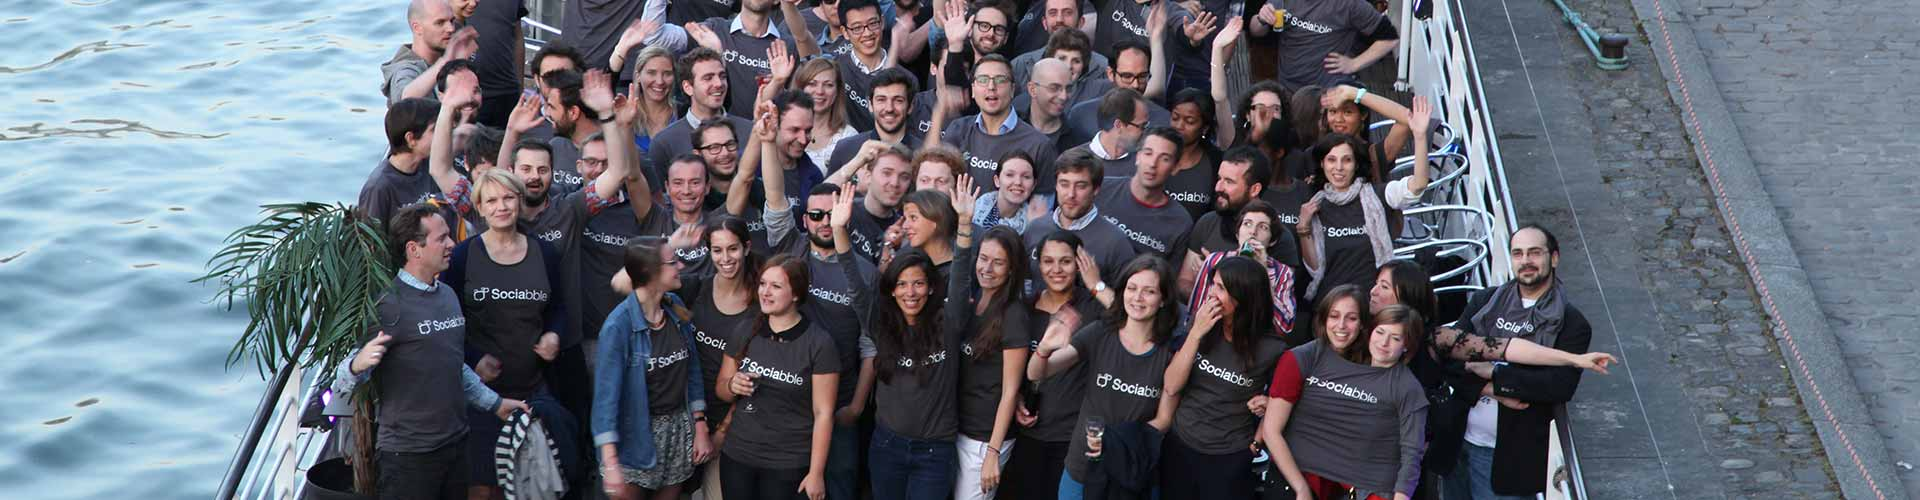 Sociabble Named among the Top 100 Companies Recruiting in the Digital Sphere